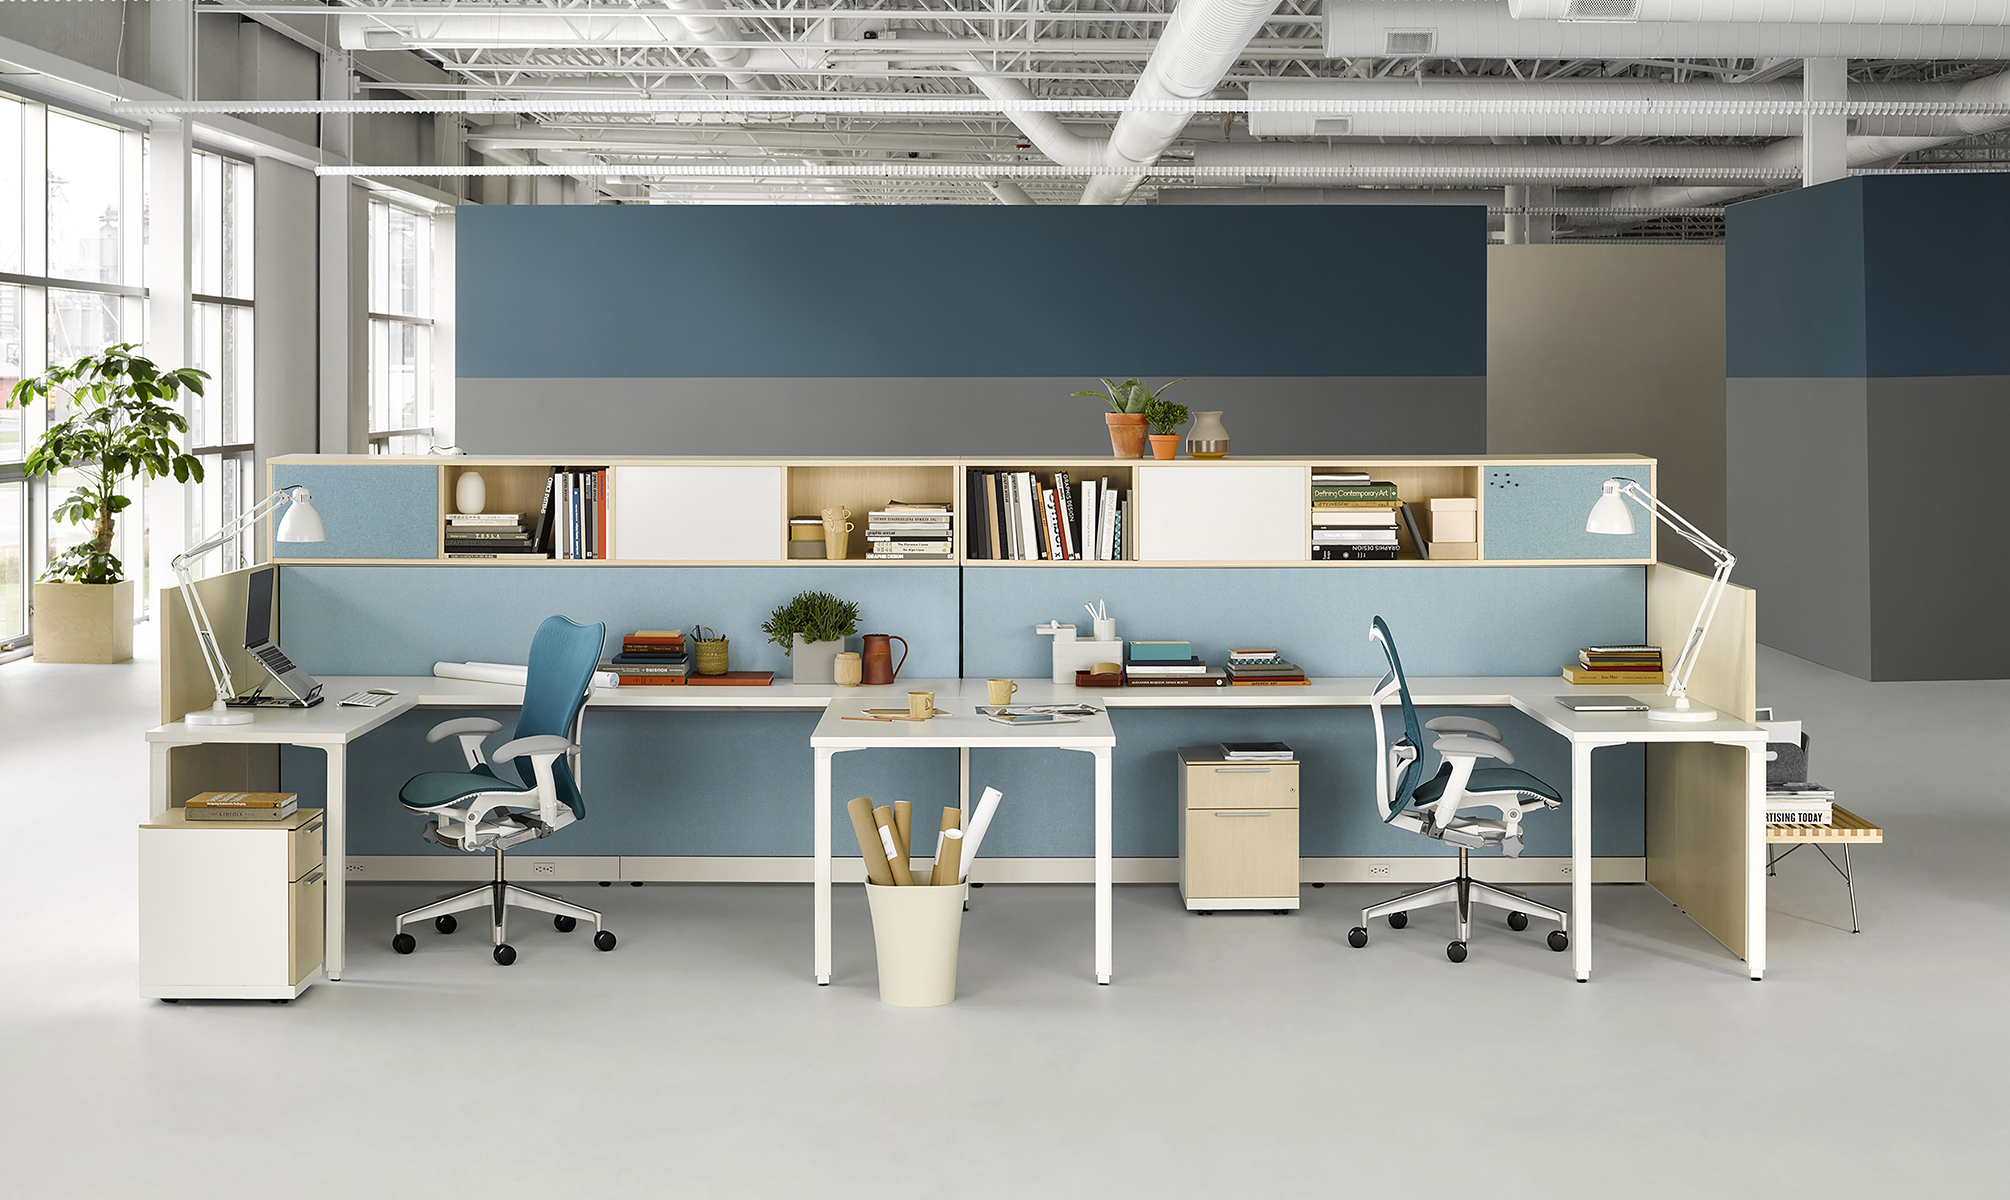 Reconfiguration alfred williams company for Office design outlet